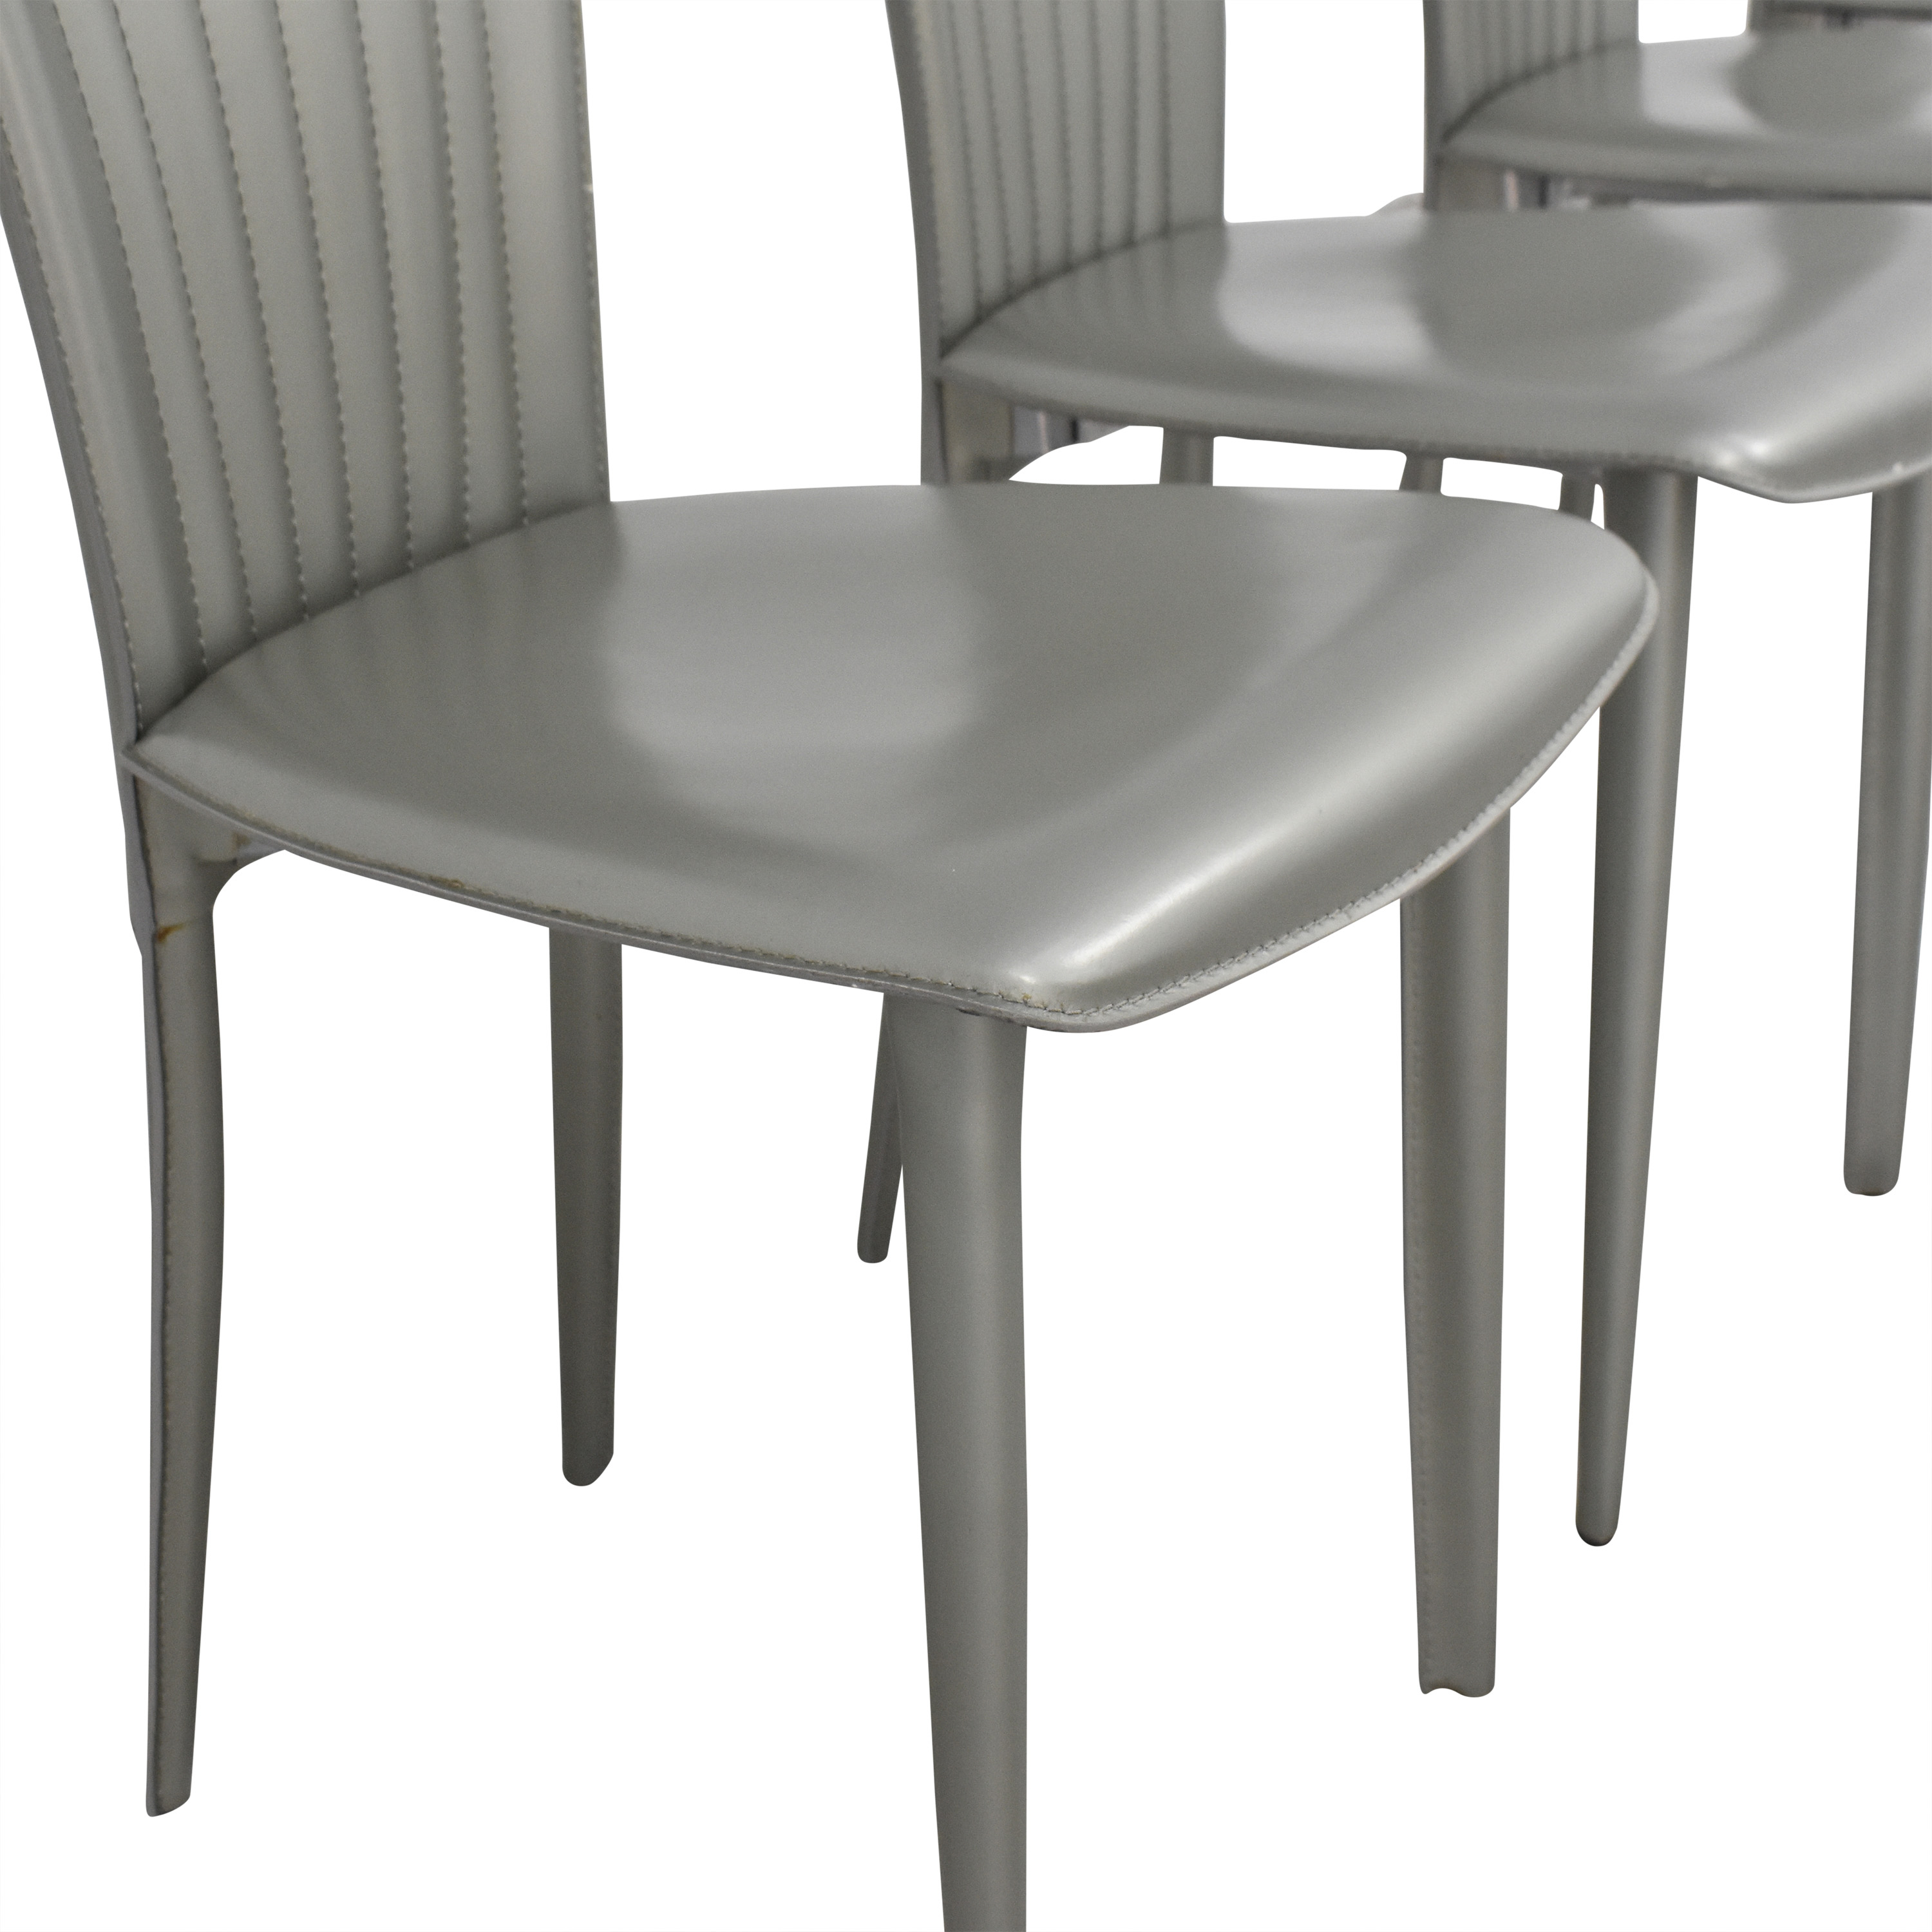 Maurice Villency Maurice Villency Dining Chairs used